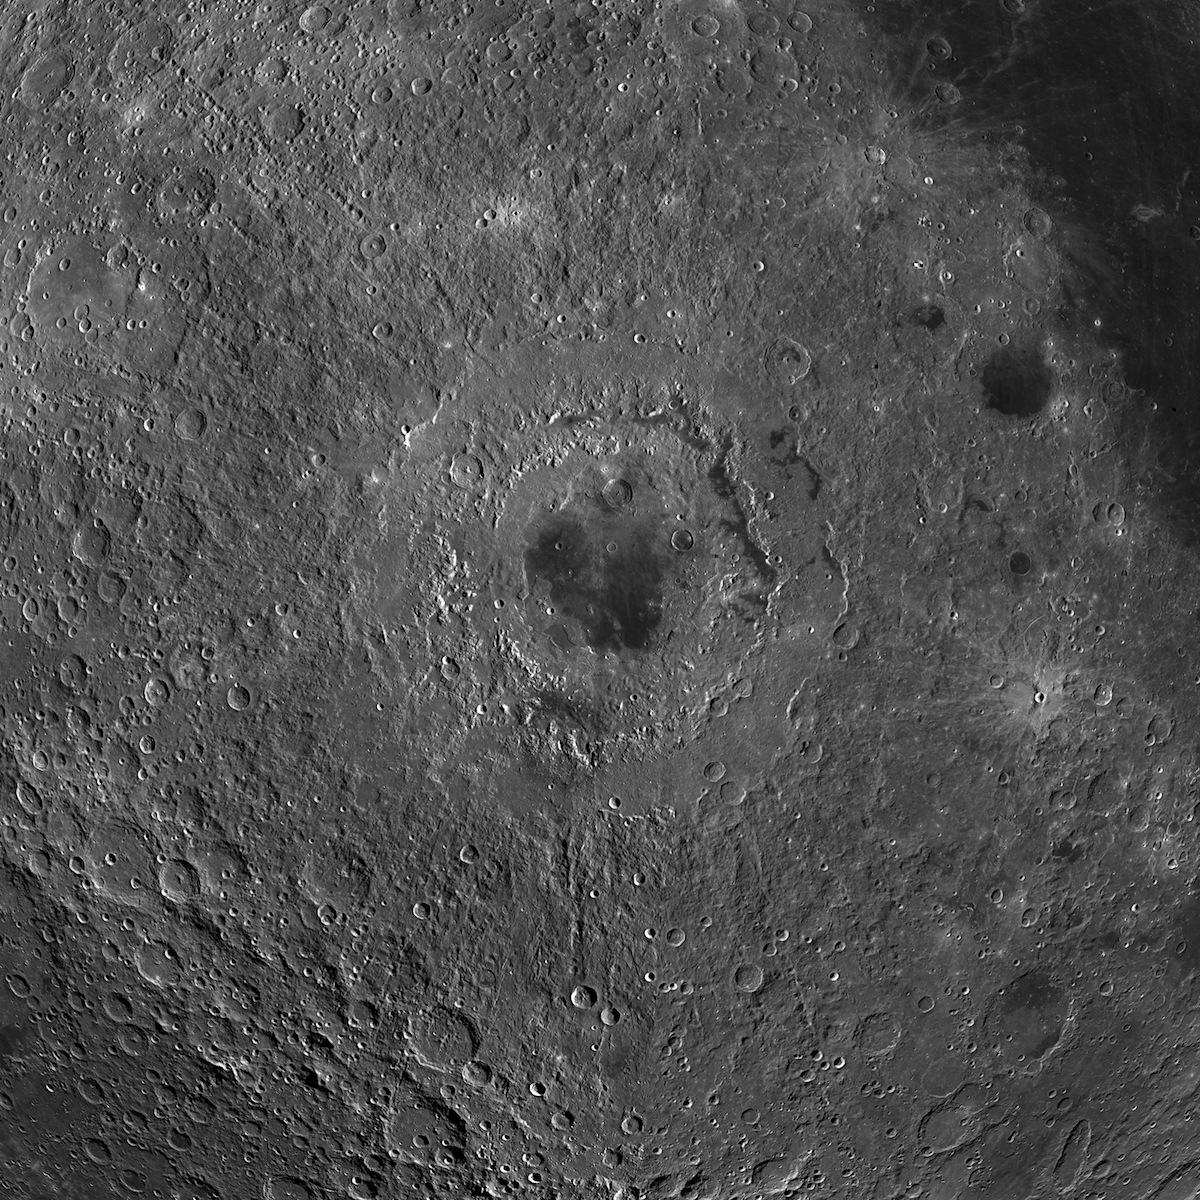 A mosaic of images from NASA's Lunar Reconnaissance Orbiter centered on the Moon's Orientale basin.